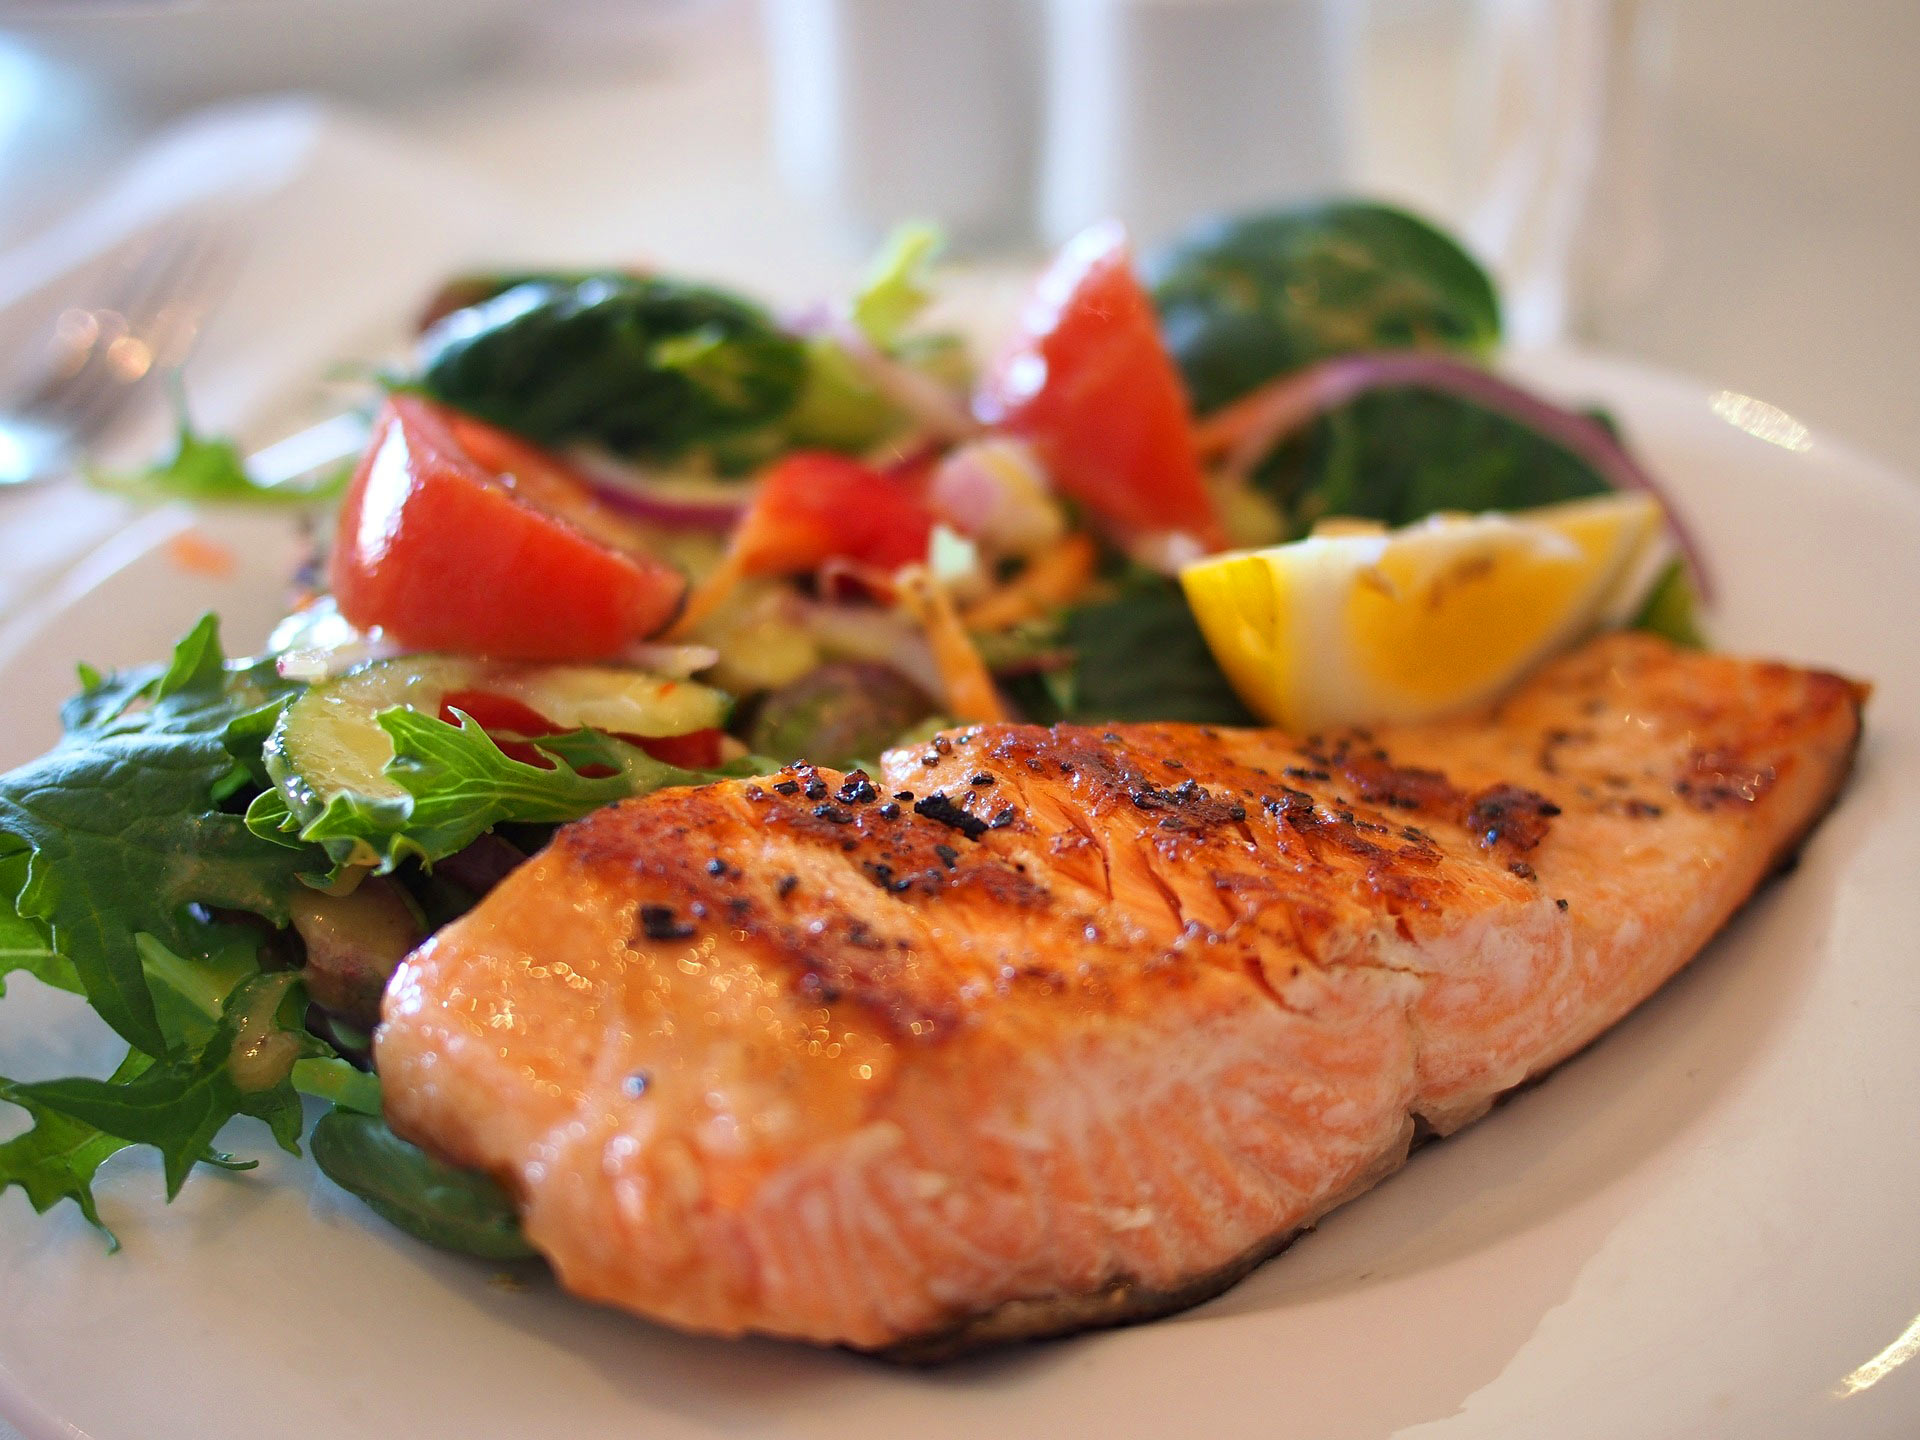 Eating fish twice a week 'may ease' arthritis symptoms""